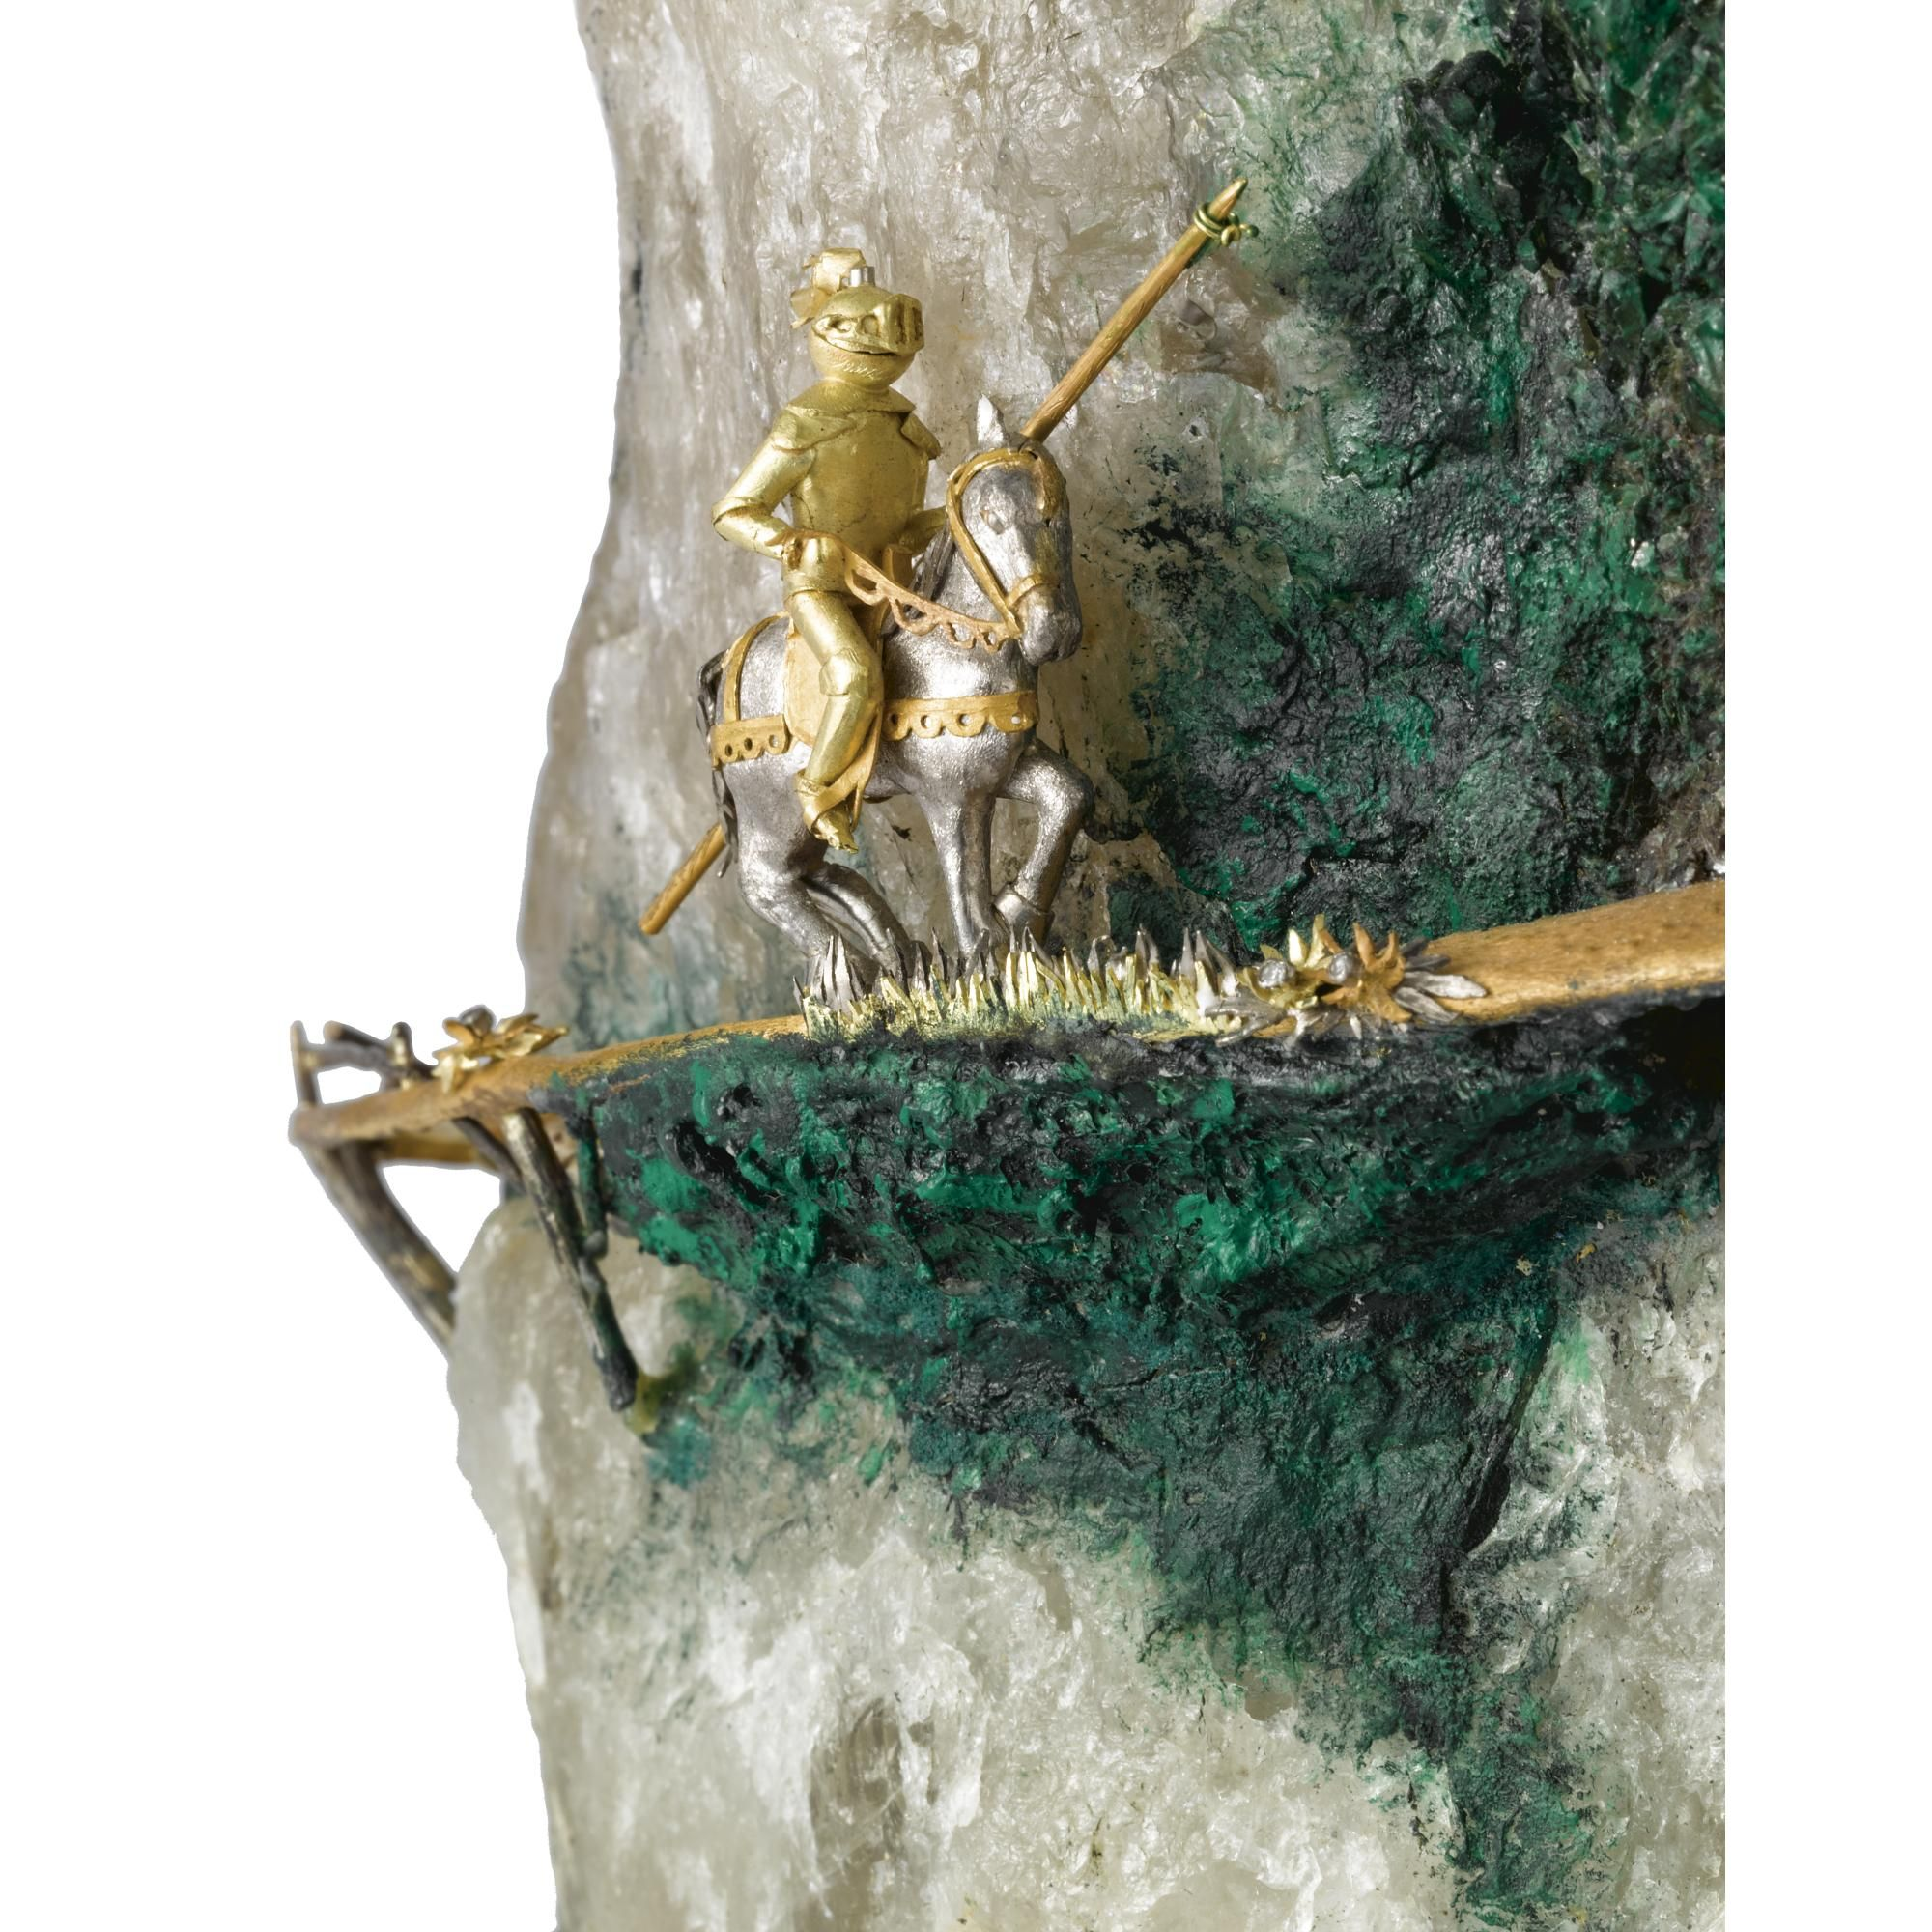 "AN ENGLISH GOLD, SILVER AND MINERAL SPECIMAN ""FAIRY TALE"" CASTLE, WILLIAM TOLLIDAY, LONDON, CIRCA 1980 mounted on a rocky mountain of rock crystal with pyrite inclusion, all on a faux malachite base, the many turreted castle of gold with oxidized silver roofs, complete with draw bridge, a knight in armor approaching on a serpentine gold path, strewn with diamond-set flowers, at the base a fisherman in a boat, floating on a striated agate pond with willow tree at one side"